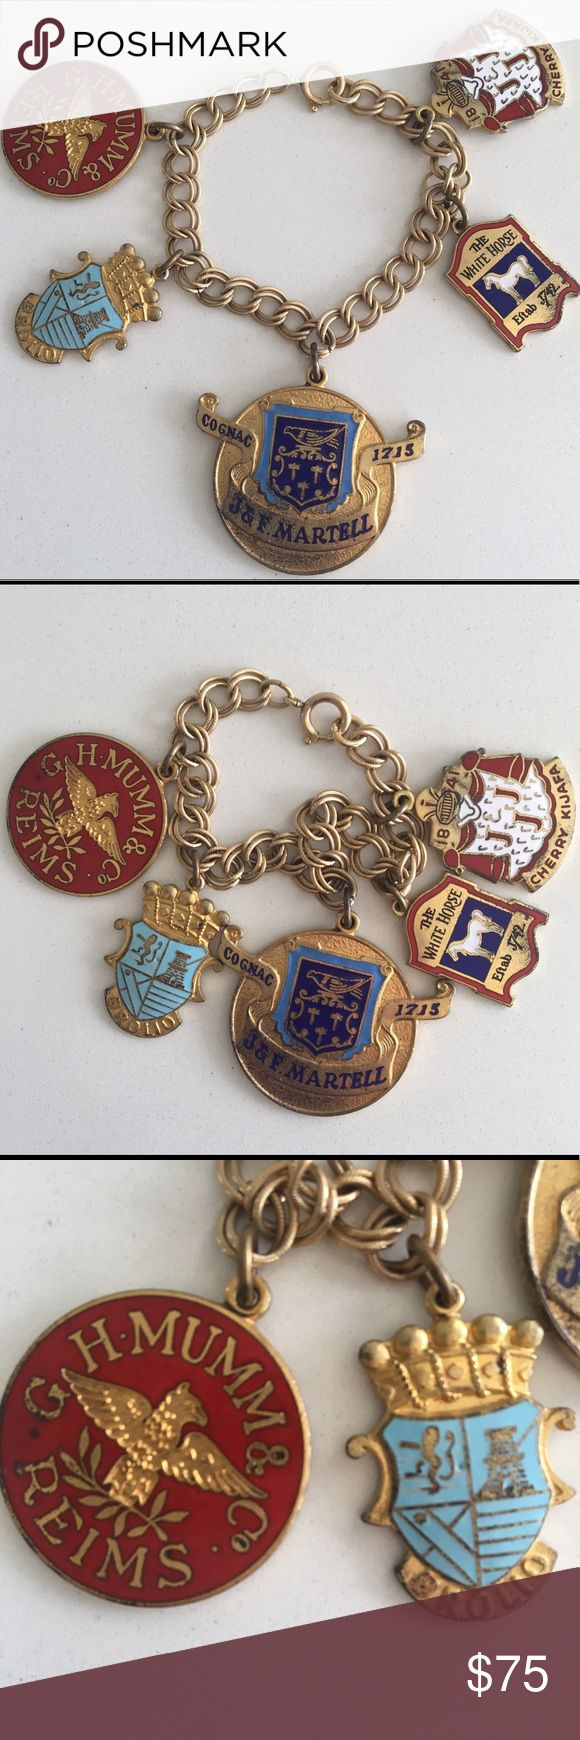 """Vintage Charm Bracelet with Liquor Labels/Shields This vintage gold toned and enamel bracelet features labels from famous European champagne & liquor brands. They include: J & F Martell Cognac, The White Horse Scotch Whisky, Cherry Kijafa liqueur, Brolio Chianti, and G.H. Mumm Champagne. A wonderful conversation piece. In overall great vintage condition with some tarnishing and scratches mostly on back side of charms. Measures approximately 6 3/4"""" long. Vintage Jewelry Bracelets"""